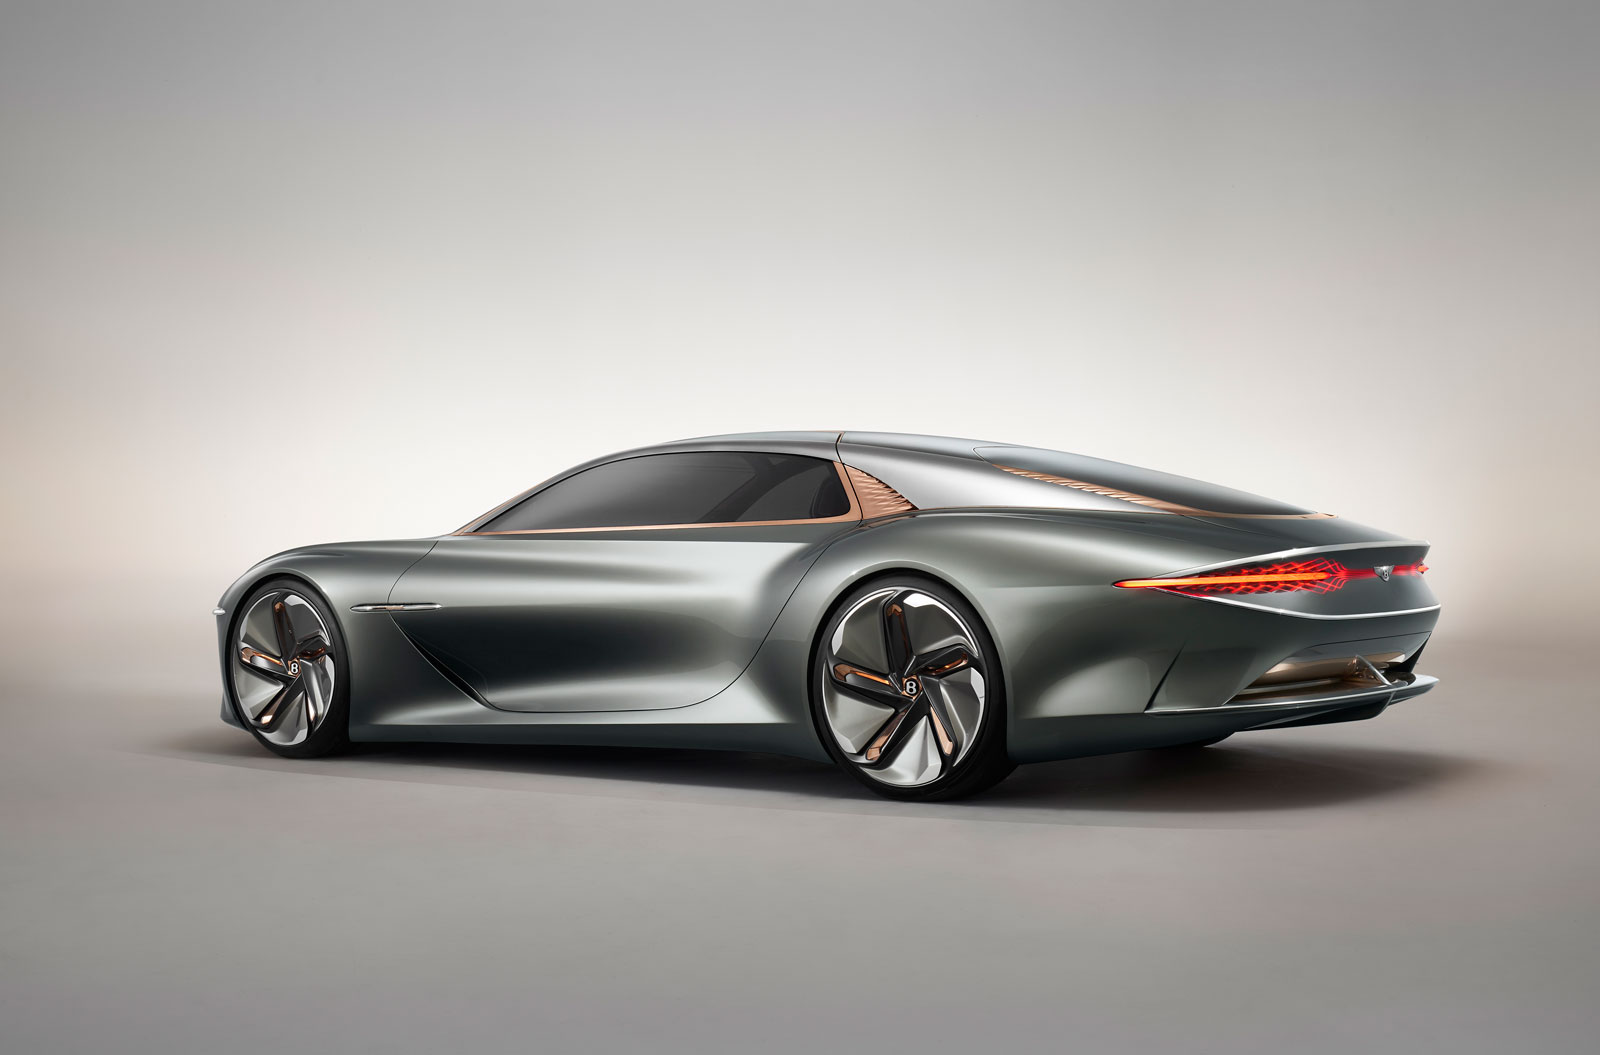 Bentley Exp 100 Gt Concept Car Body Design